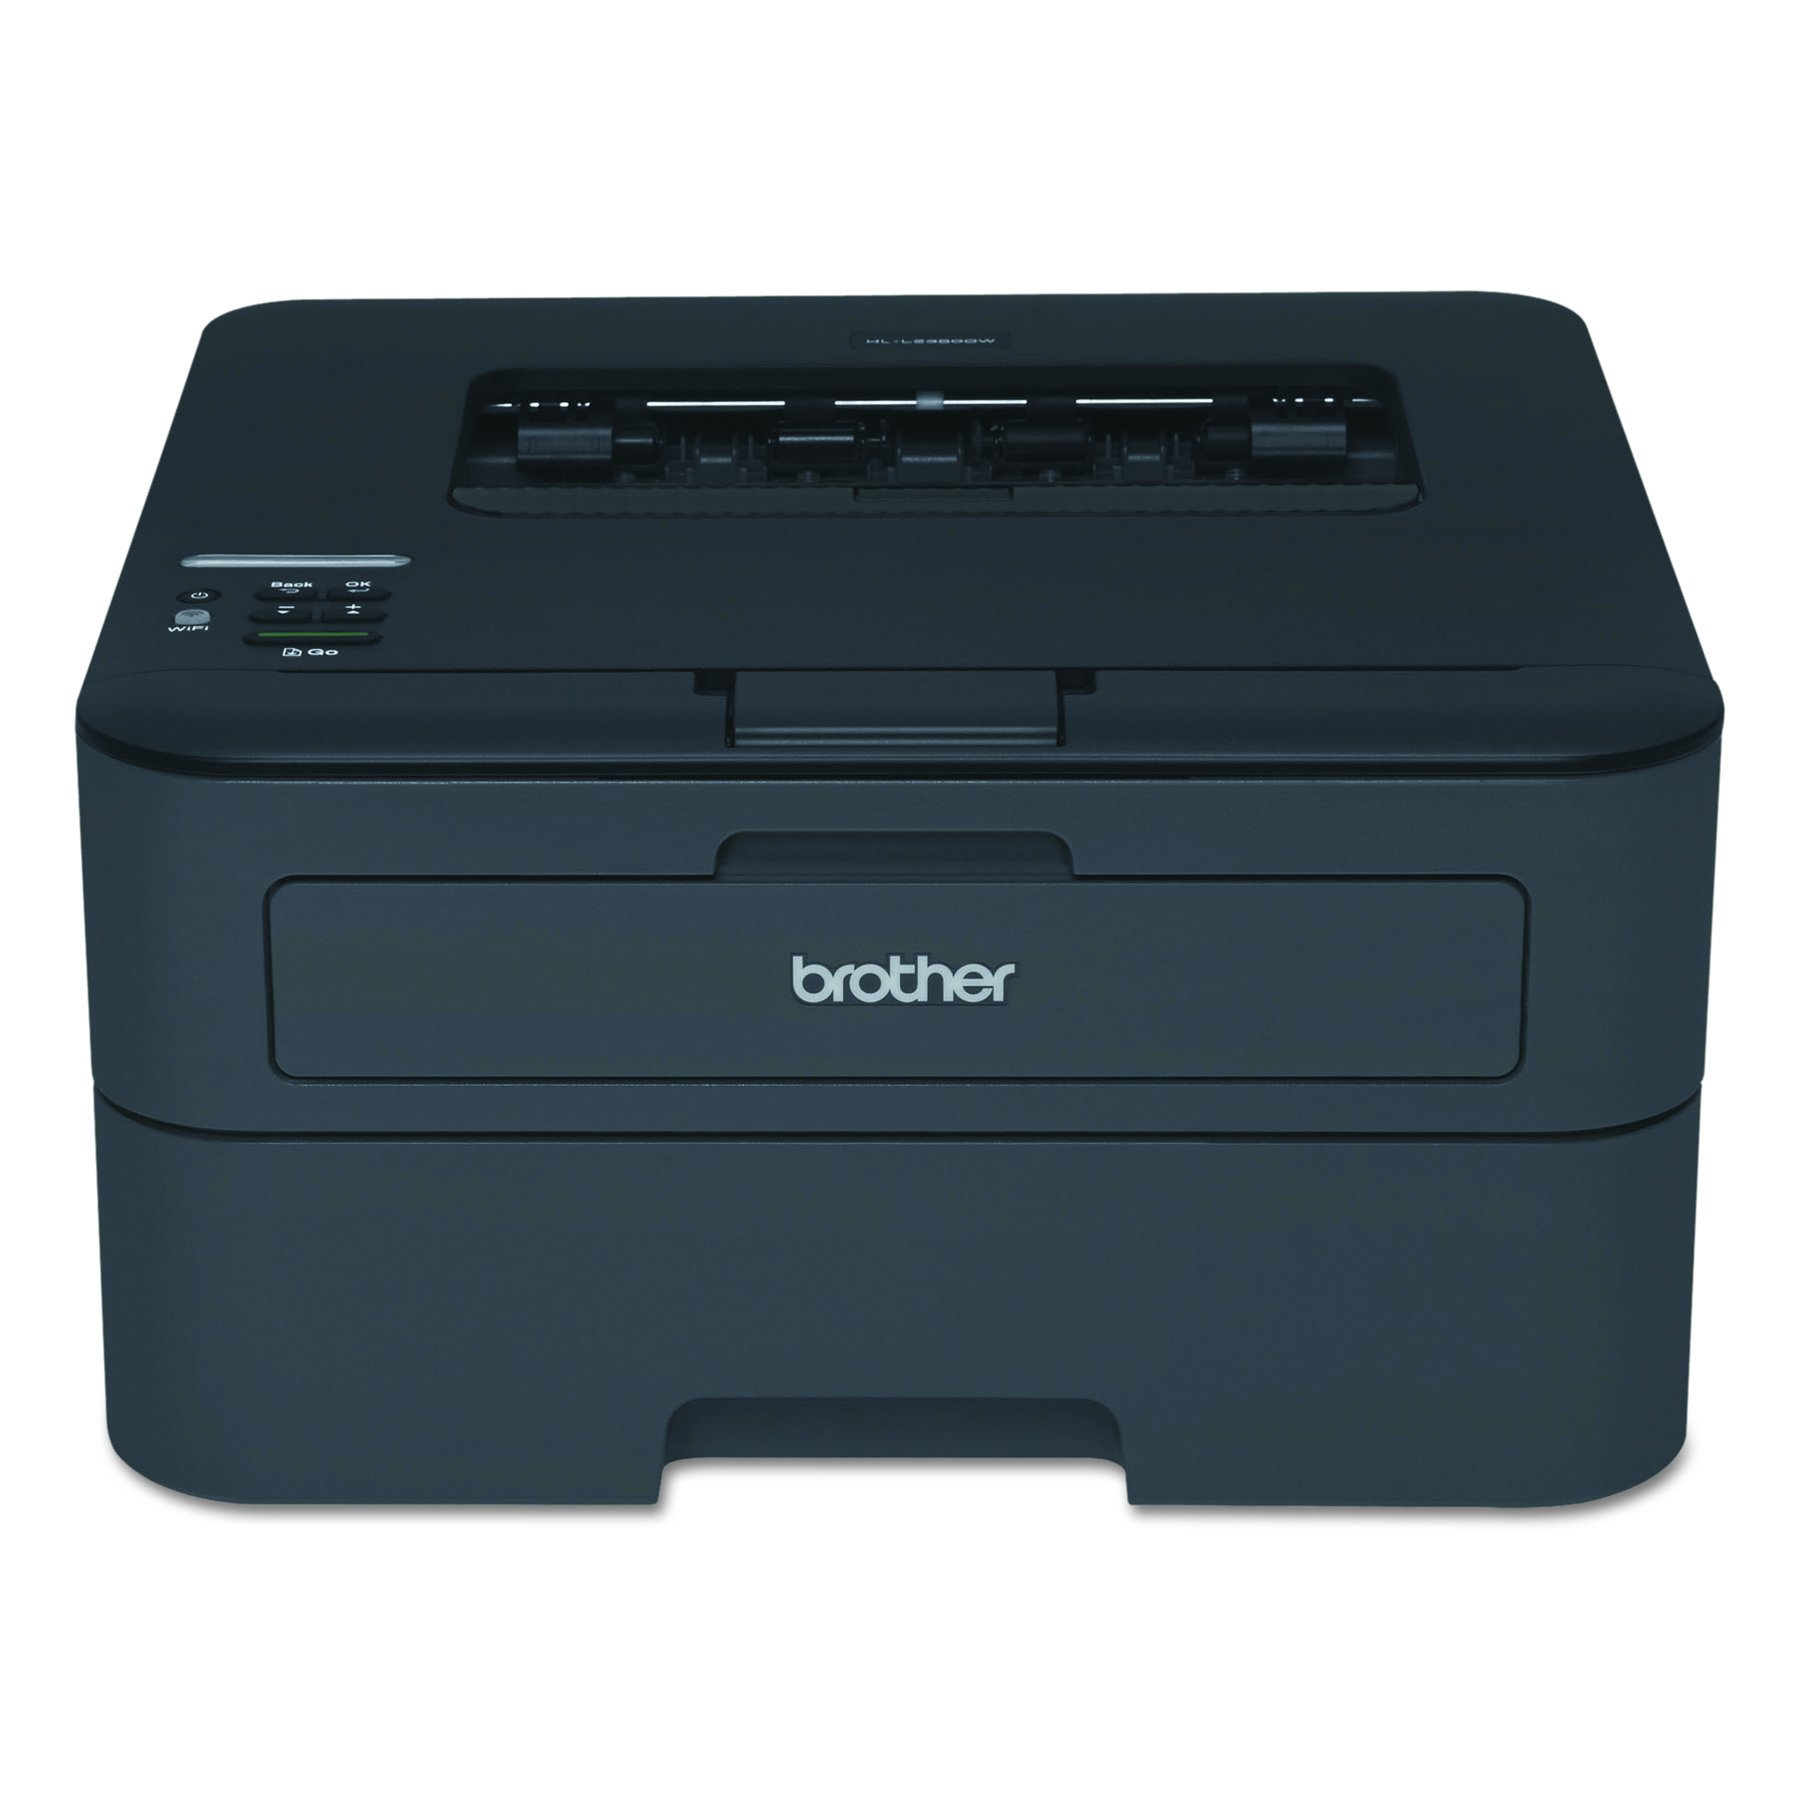 Brother HL-L2340DW Compact Laser Printer, Monochrome, Wireless Connectivity, Two-Sided Printing, Mobile Device Printing, Amazon Dash Replenishment Enabled by Brother